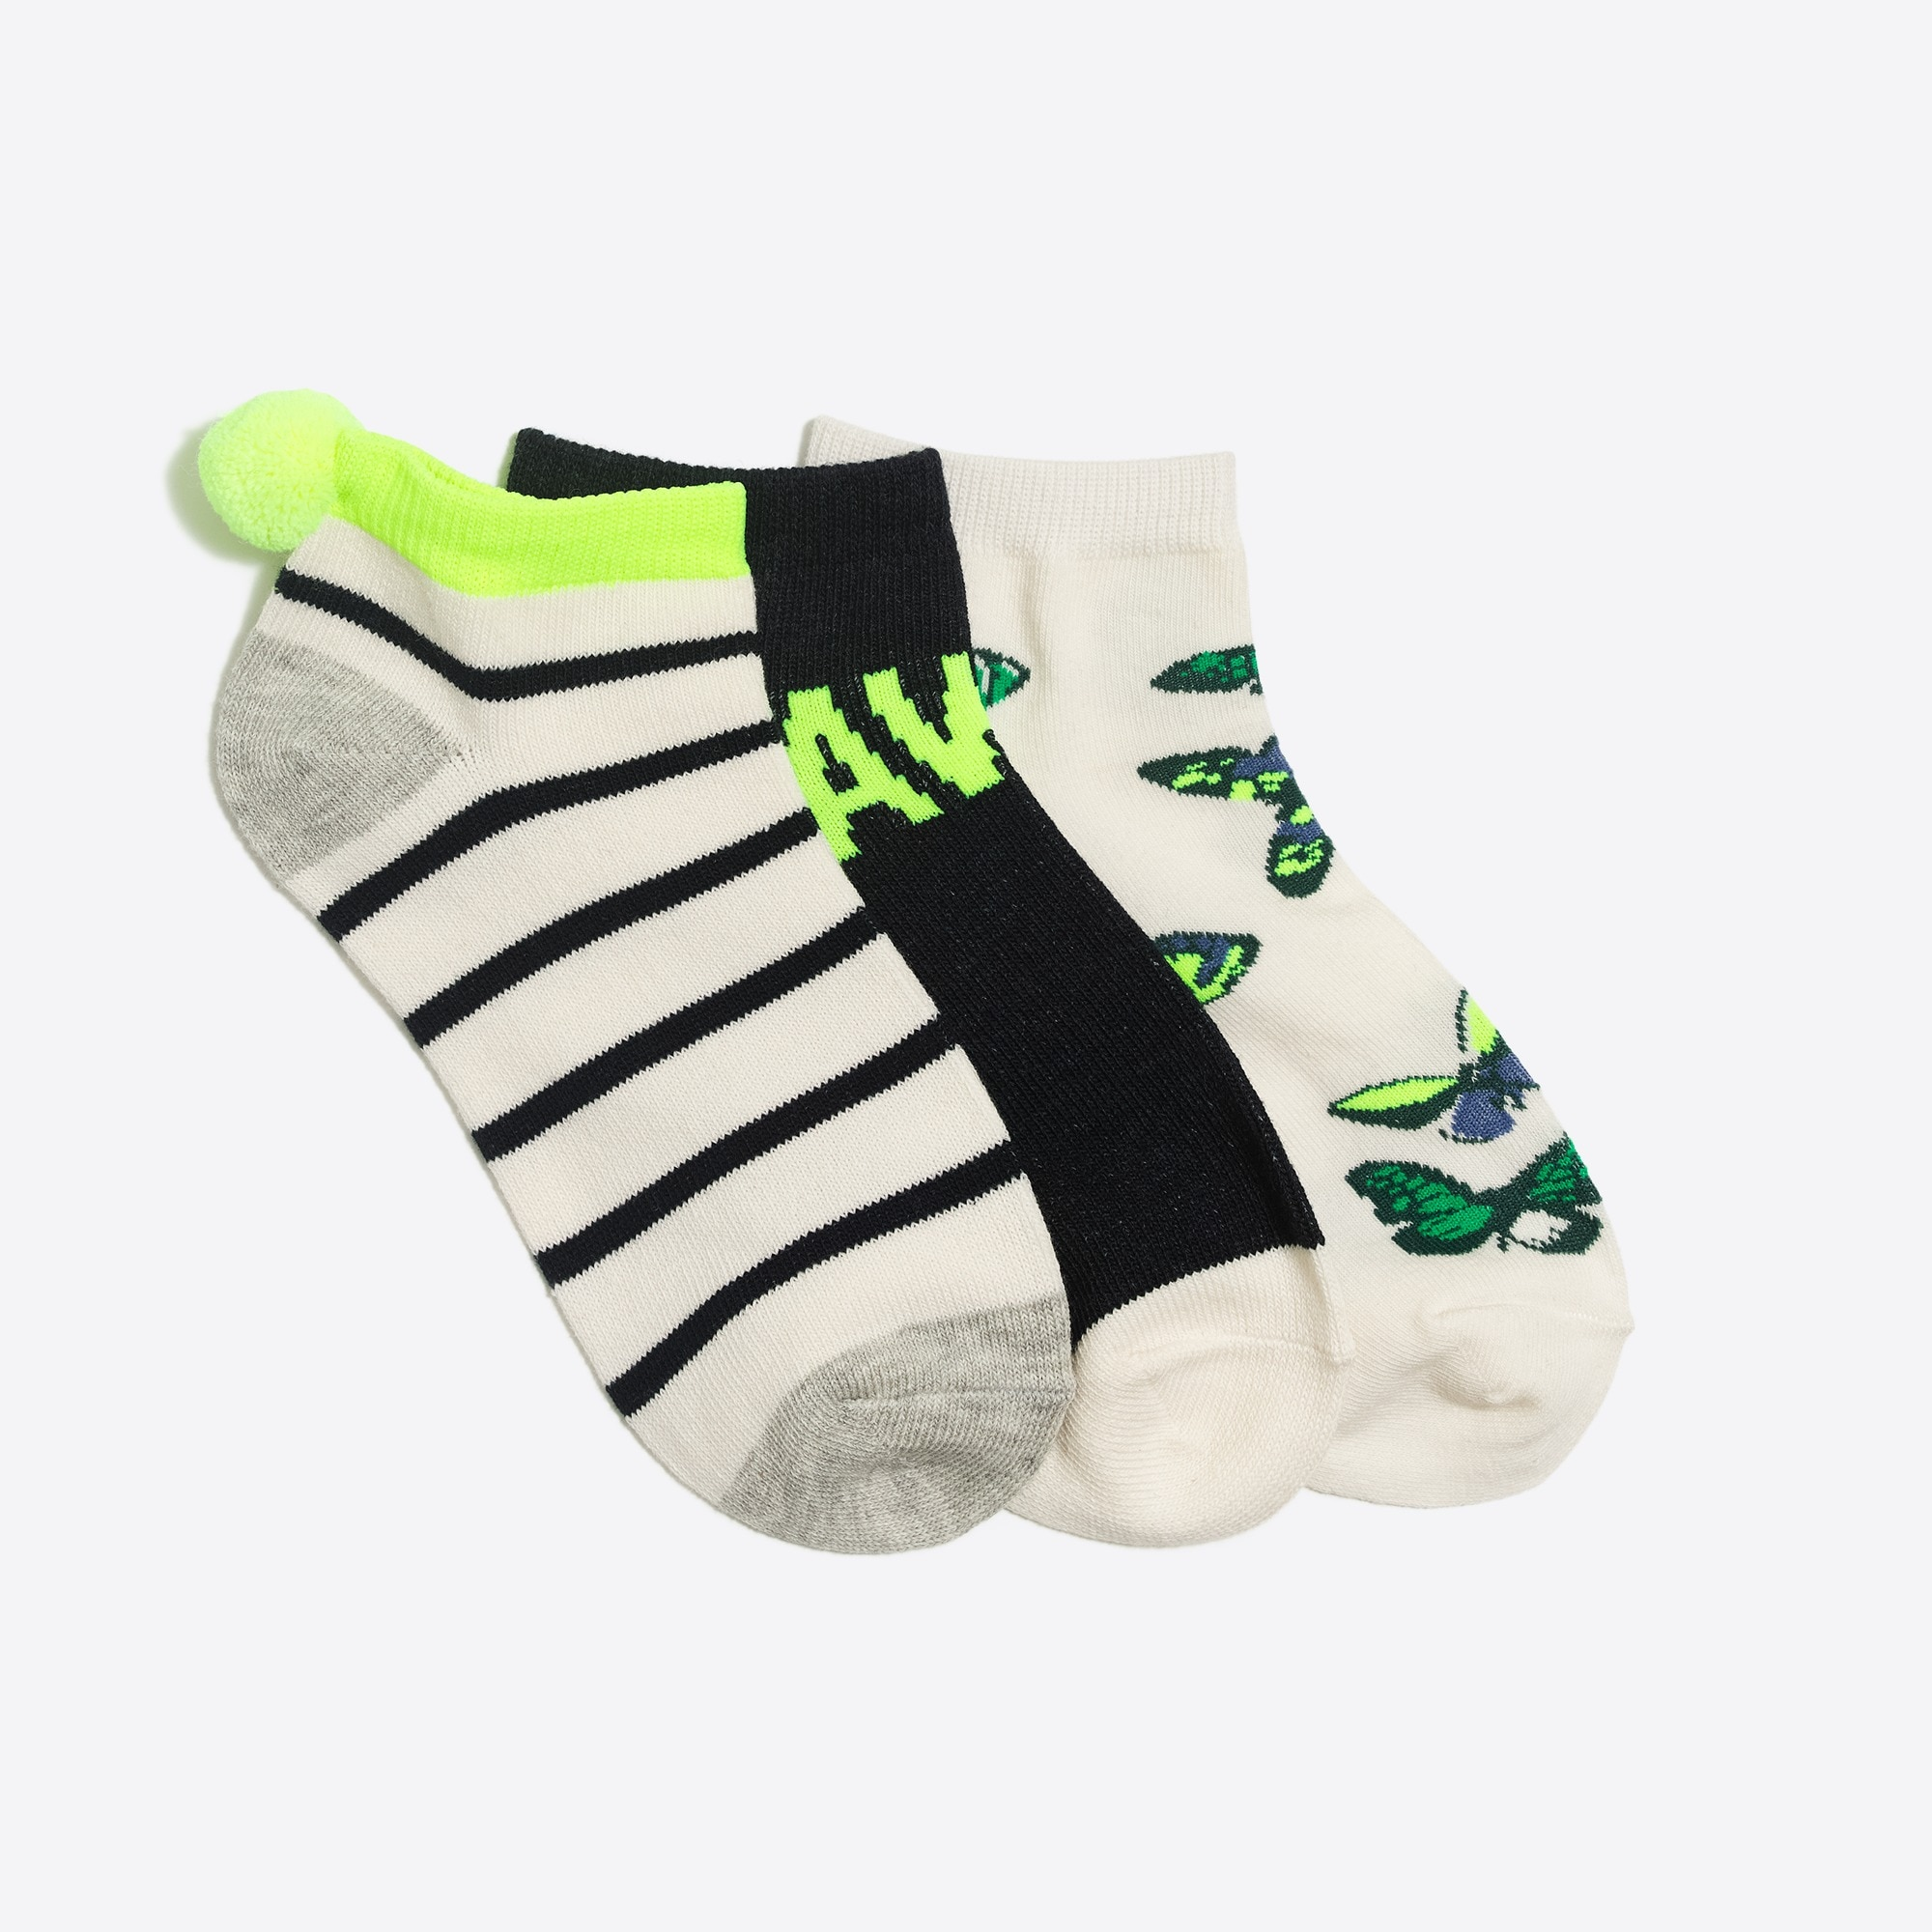 Girls' spring ankle sock three-pack